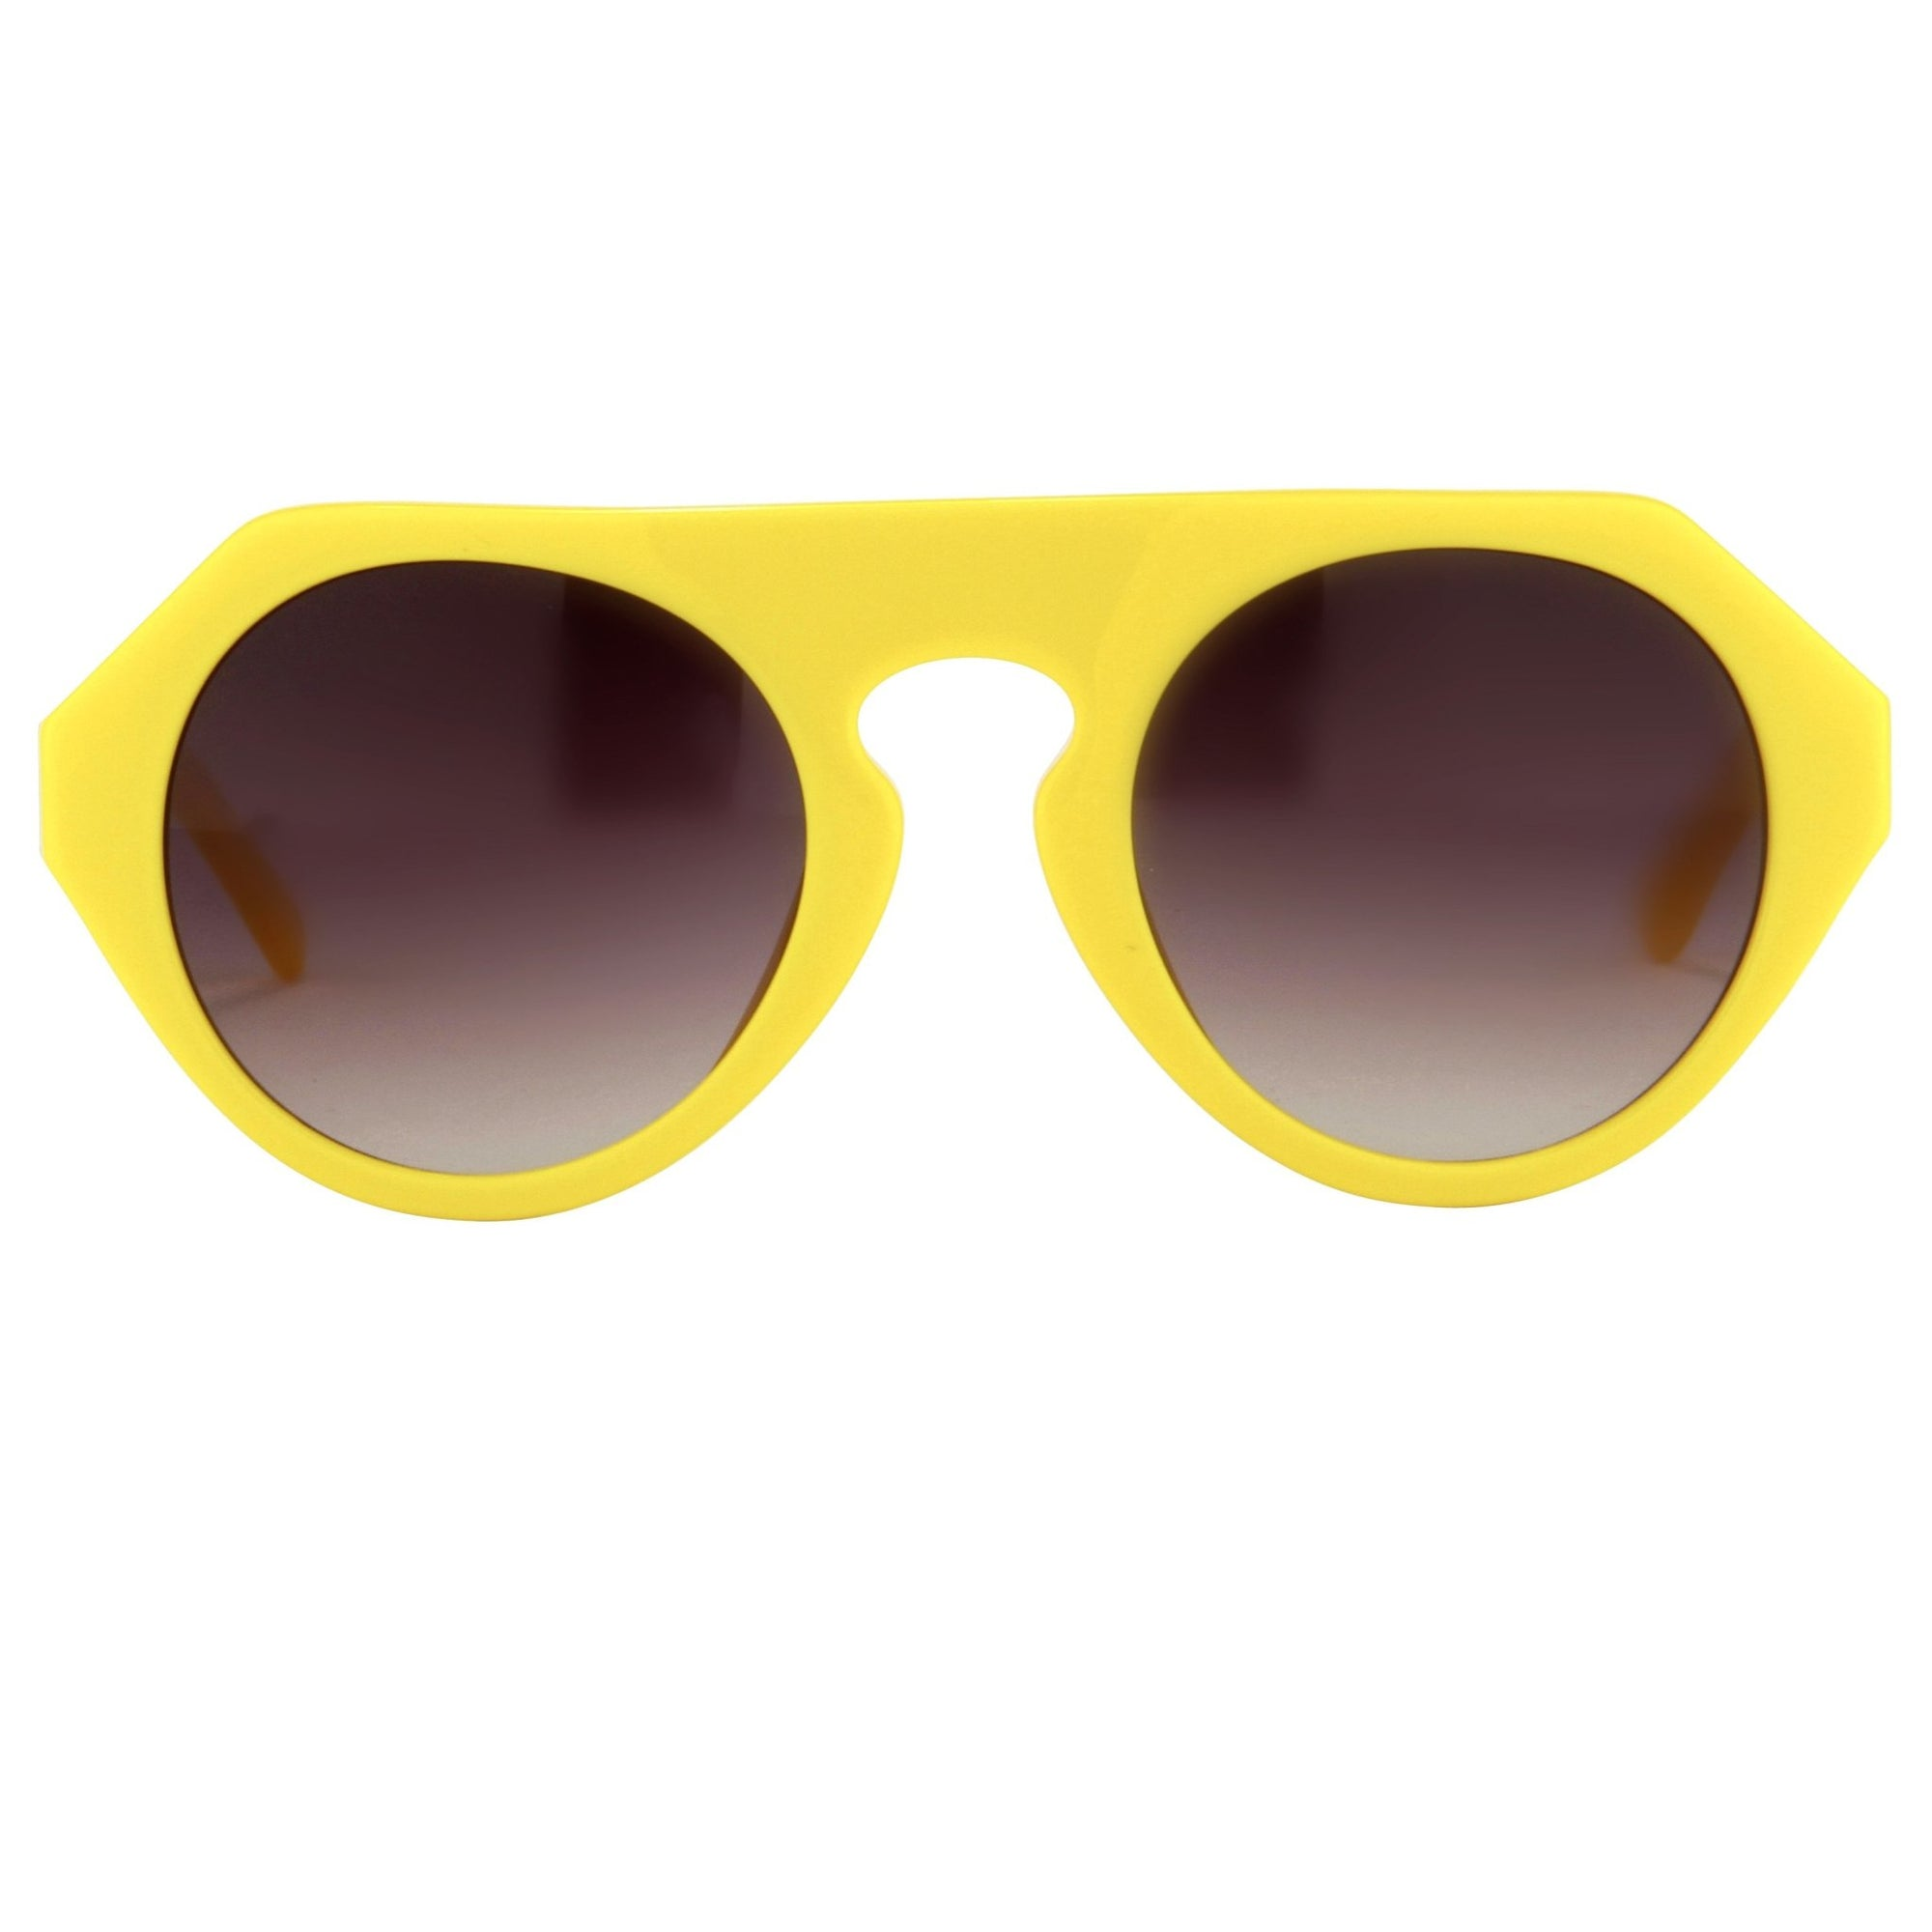 Prabal Gurung Sunglasses Women's Round Flat Top Yellow Acetate CAT2 Grey Gradient Lenses PG15C4SUN - Watches & Crystals